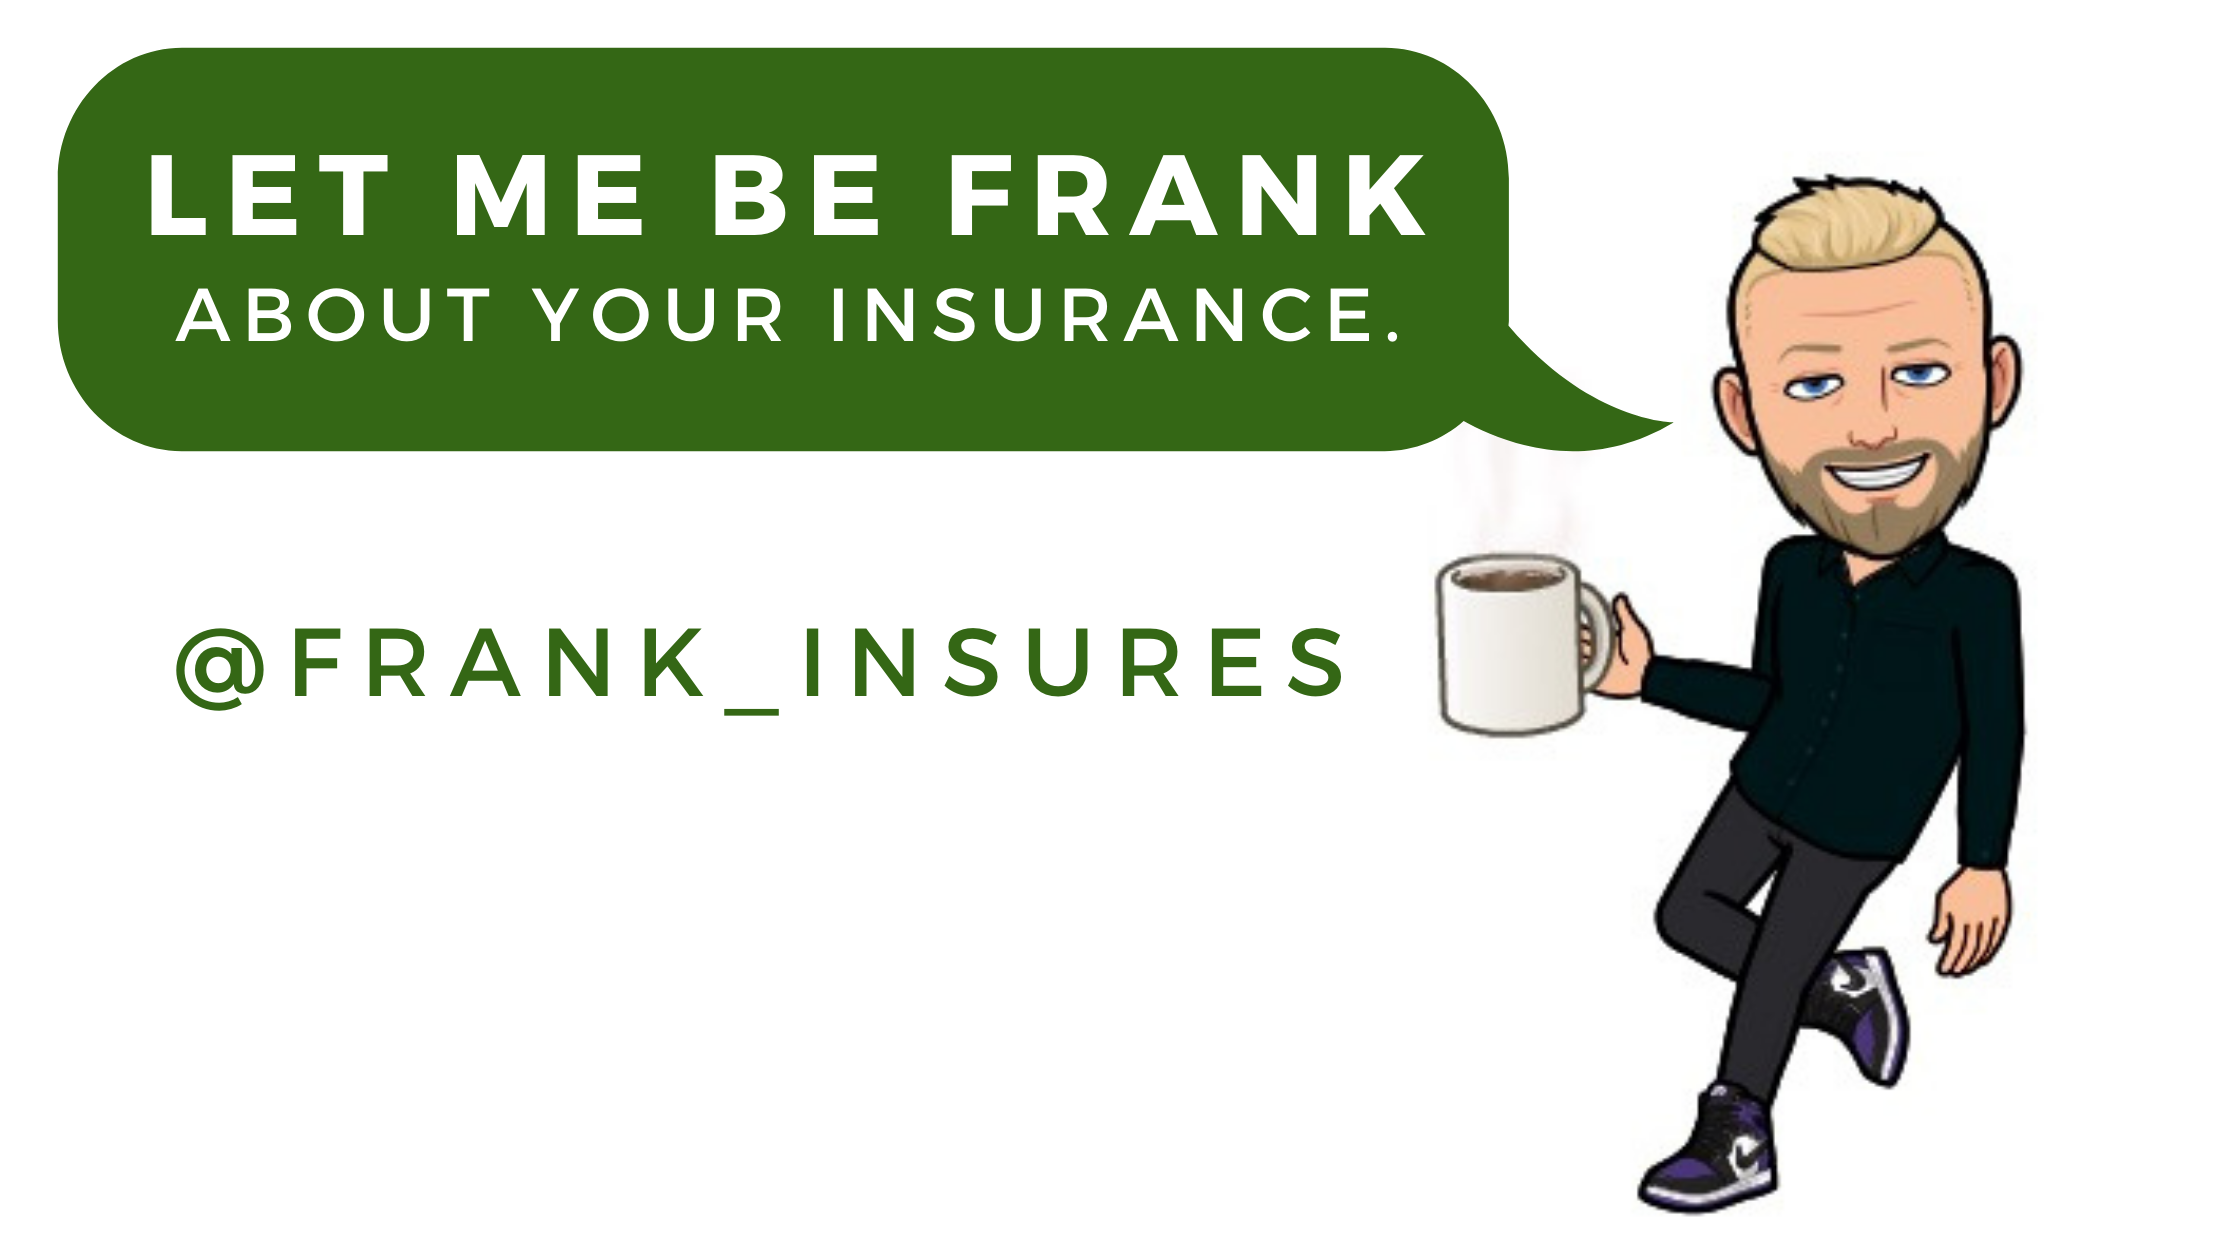 Let Me Be Frank About Your Insurance